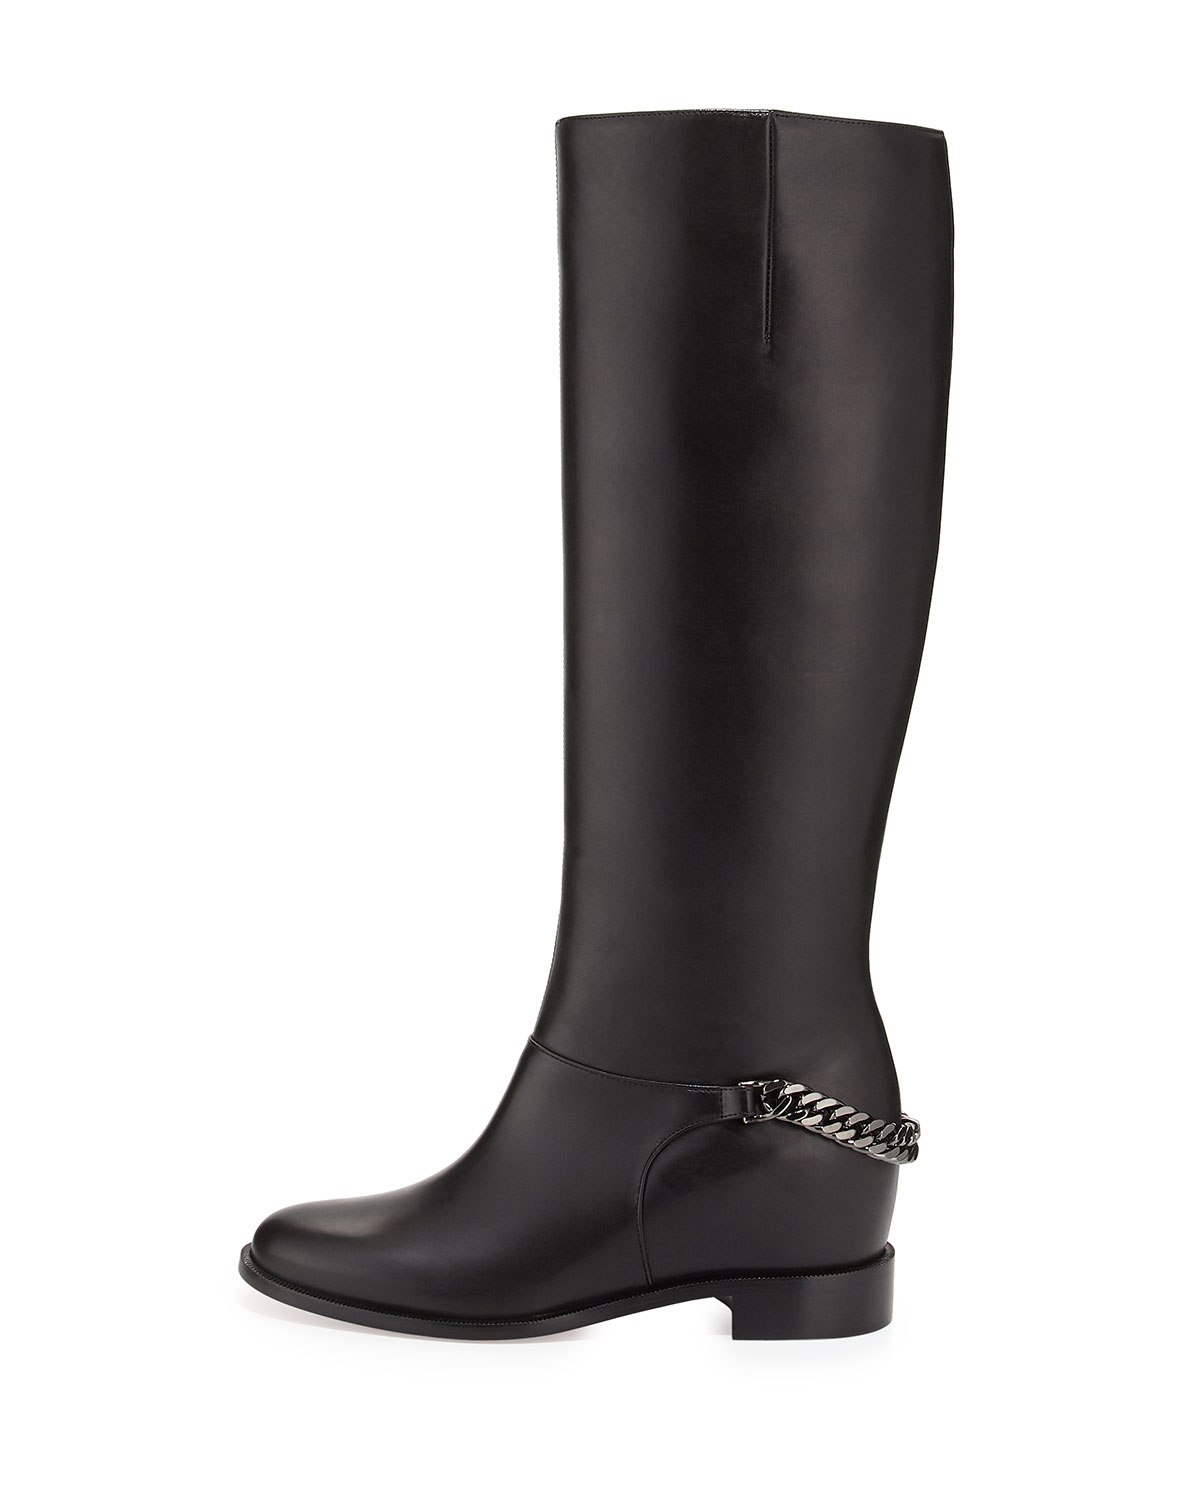 Christian louboutin Cate Hidden-Wedge Knee-High Boots in Black ...